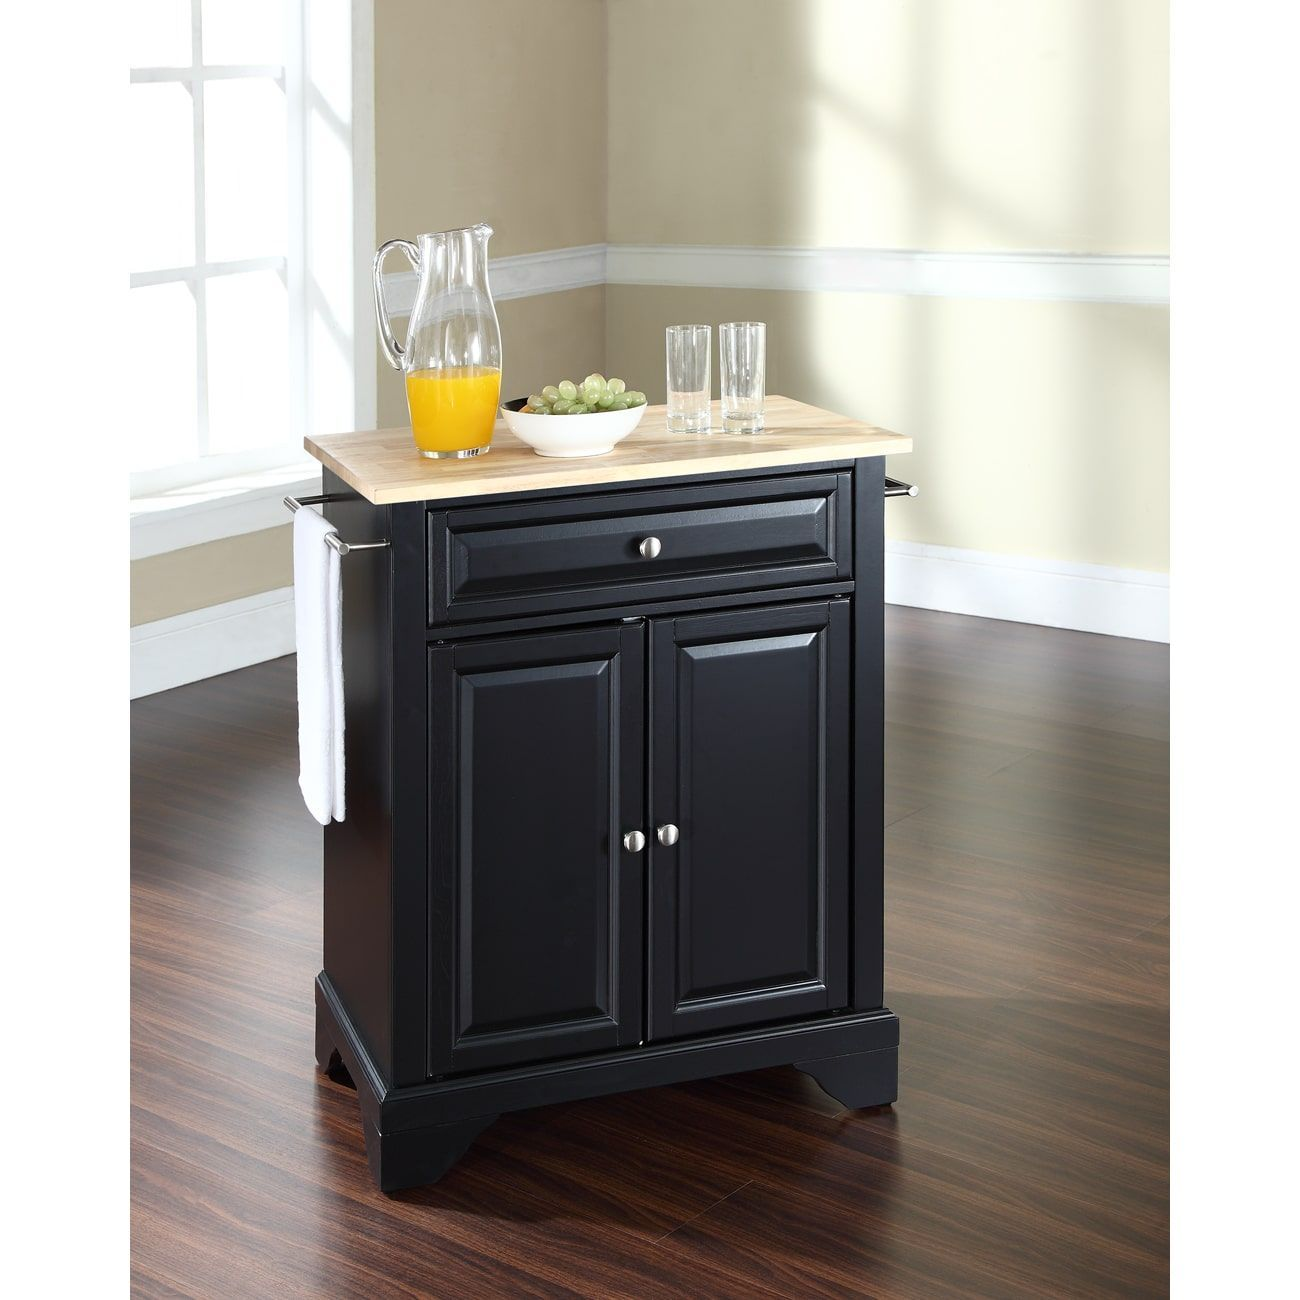 Crosley LaFayette Top Portable Kitchen Island in Finish | Products ...